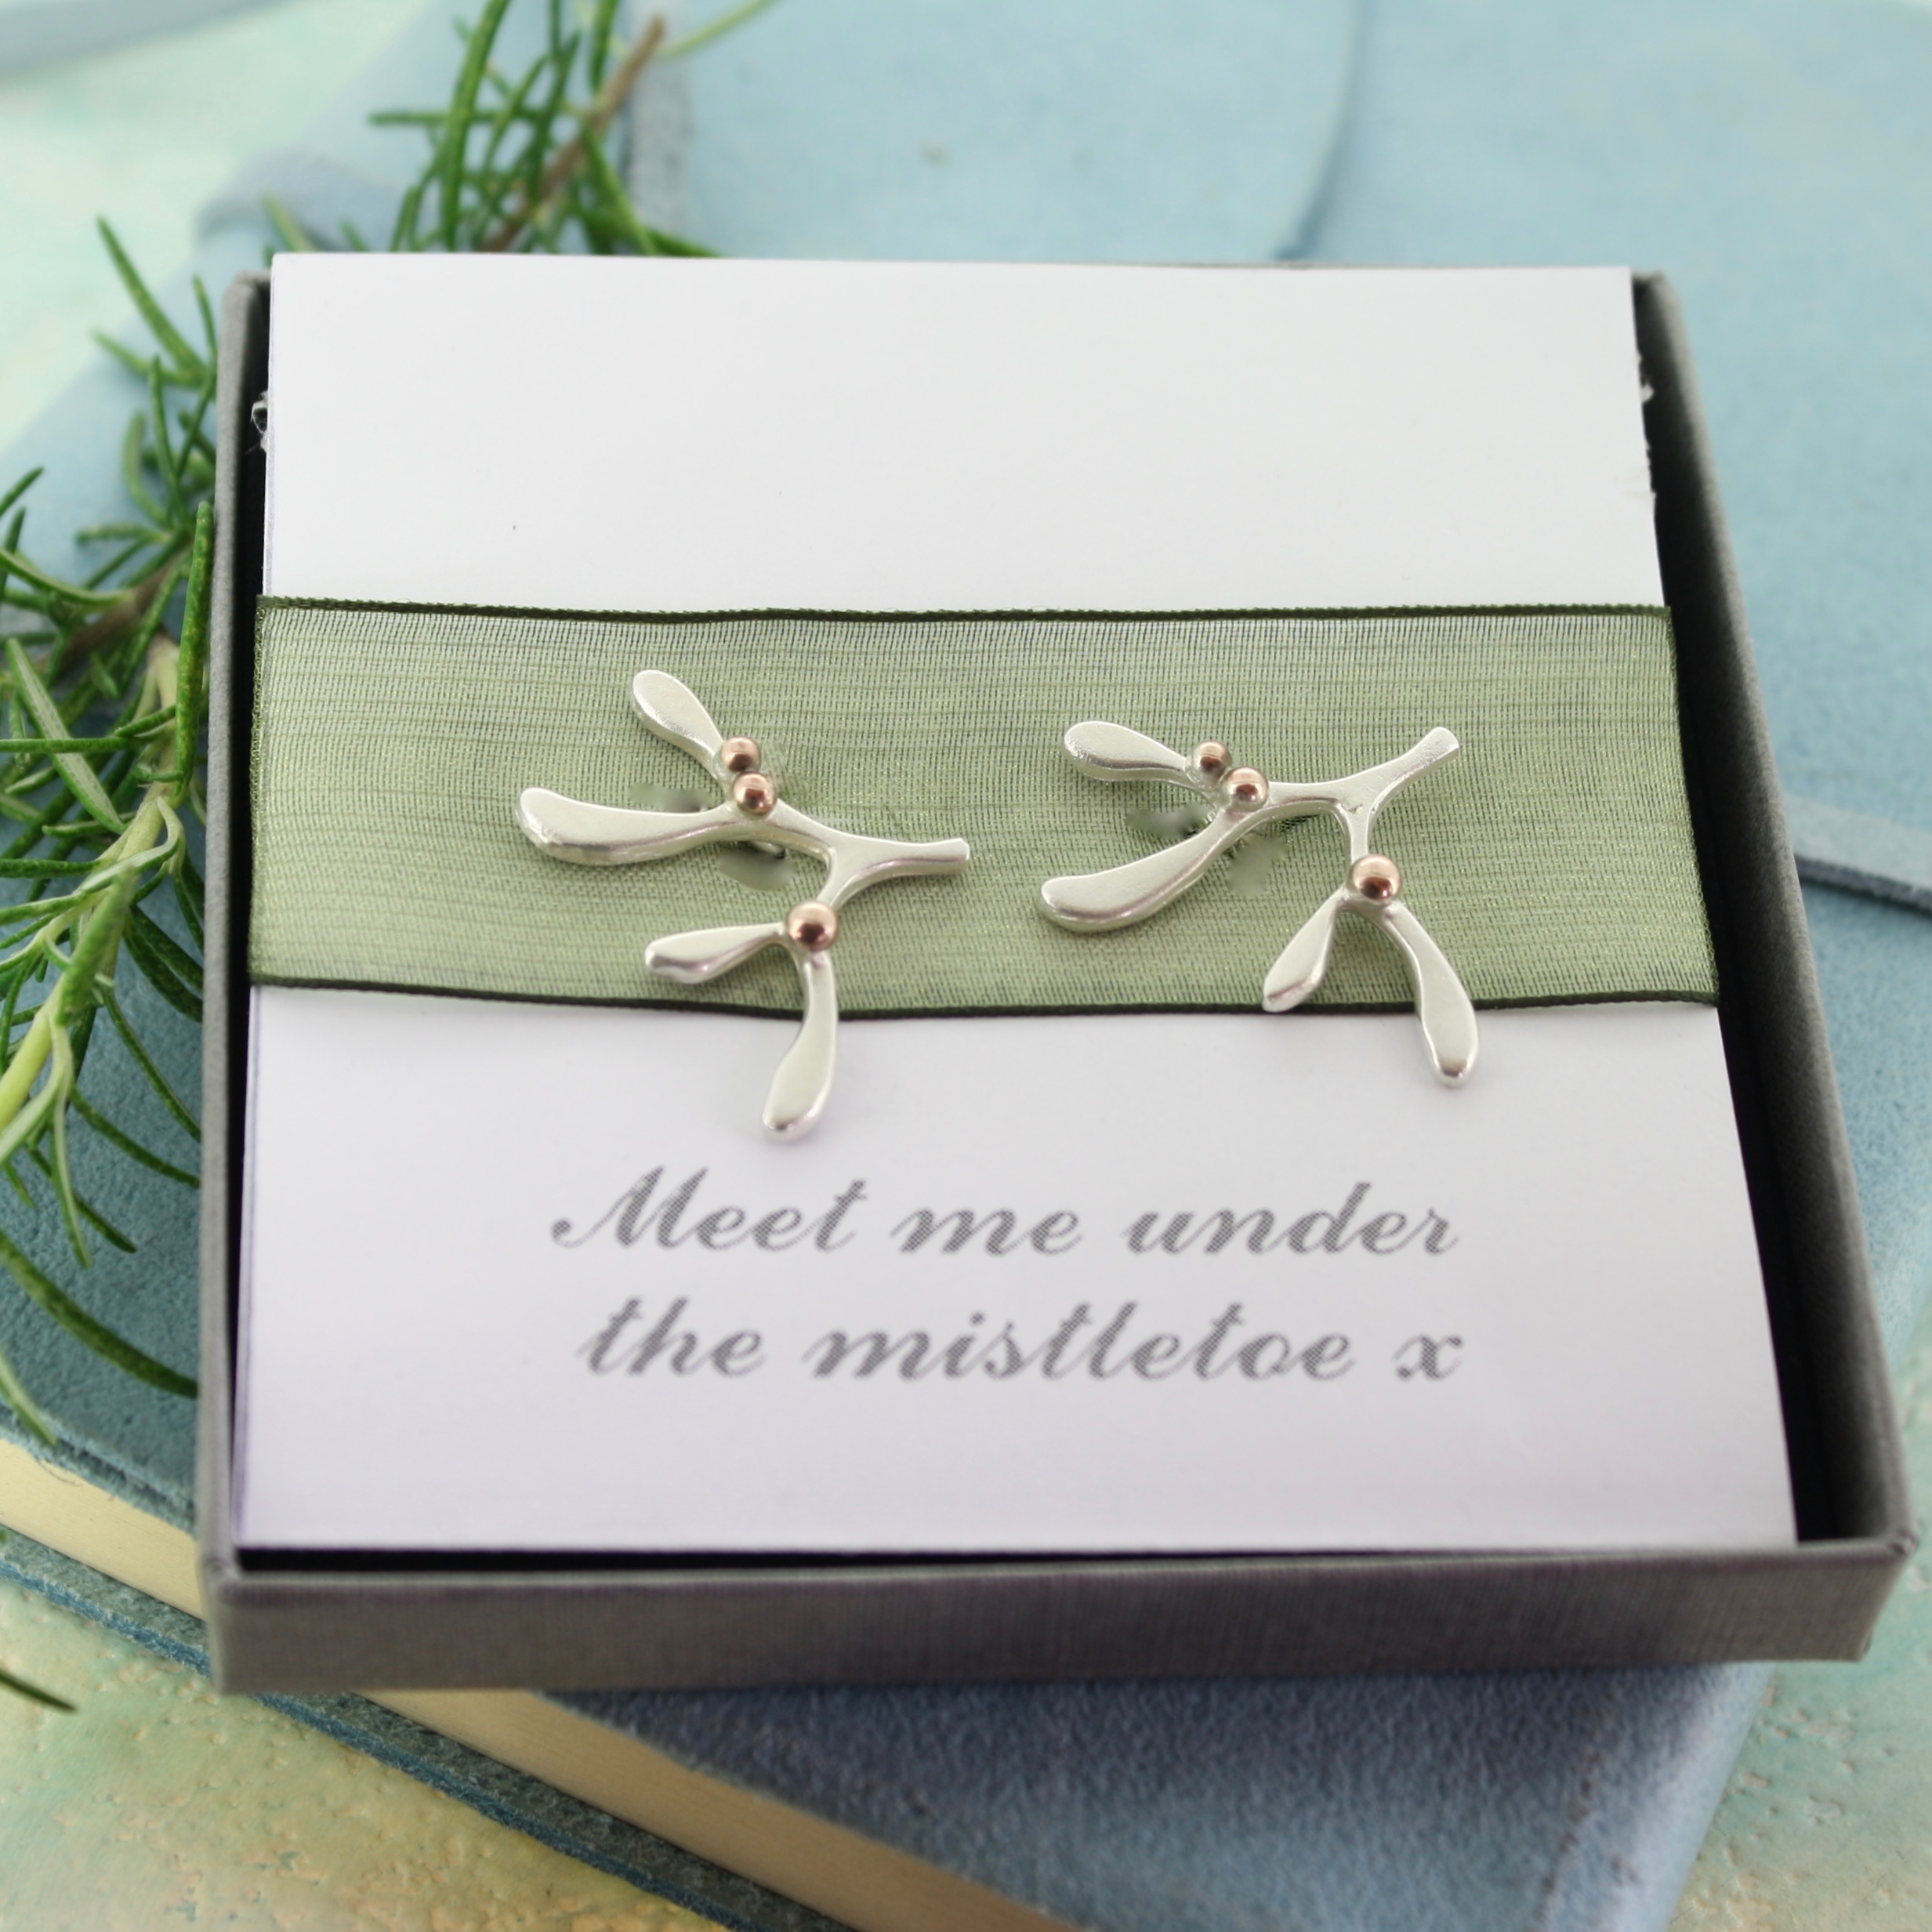 mistletoe cufflinks